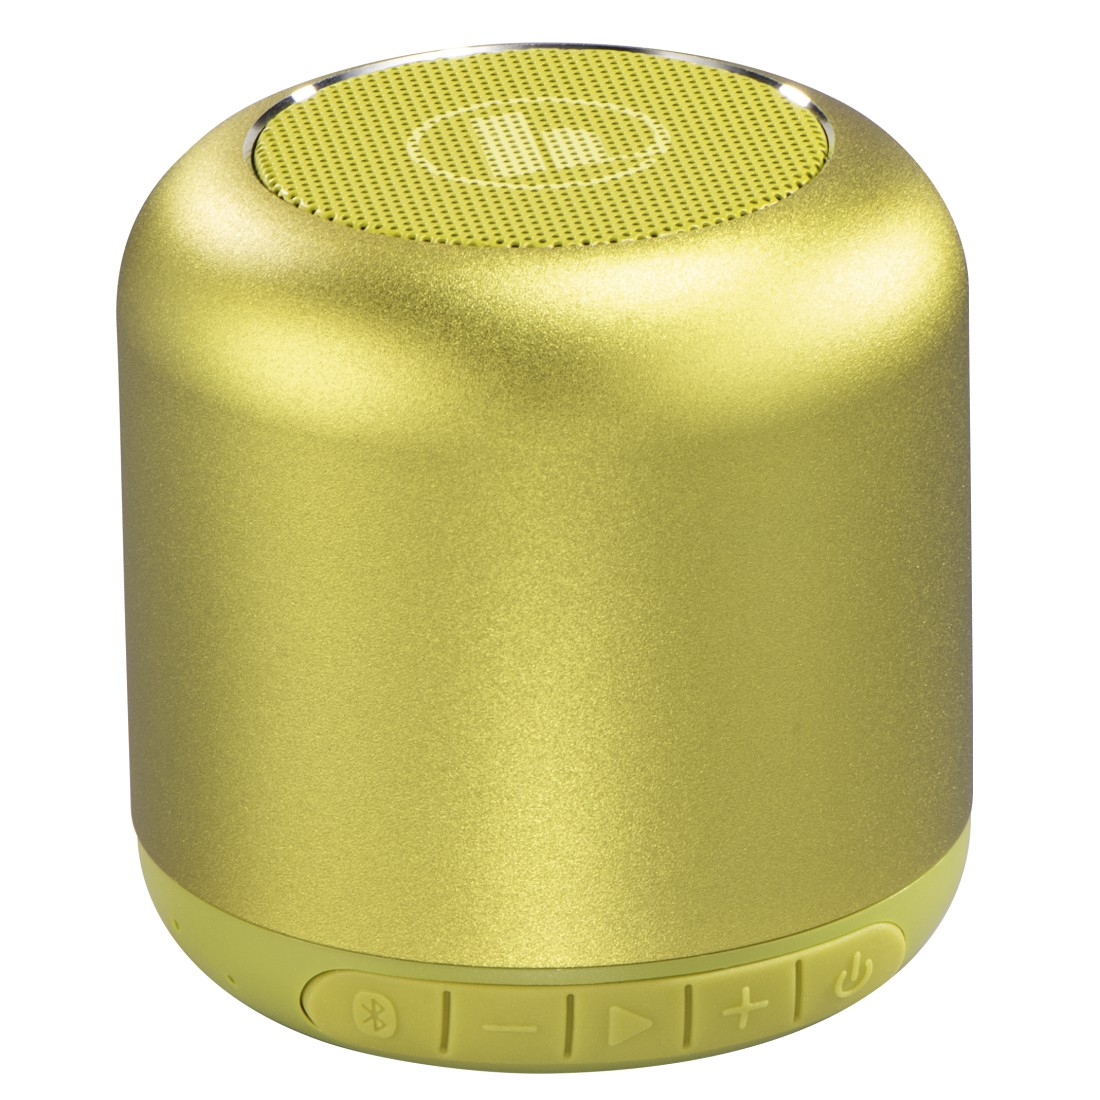 "abx3 High-Res Image 3 - Hama, Enceinte Bluetooth® ""Drum 2.0"", 3,5 W, vert jaune"